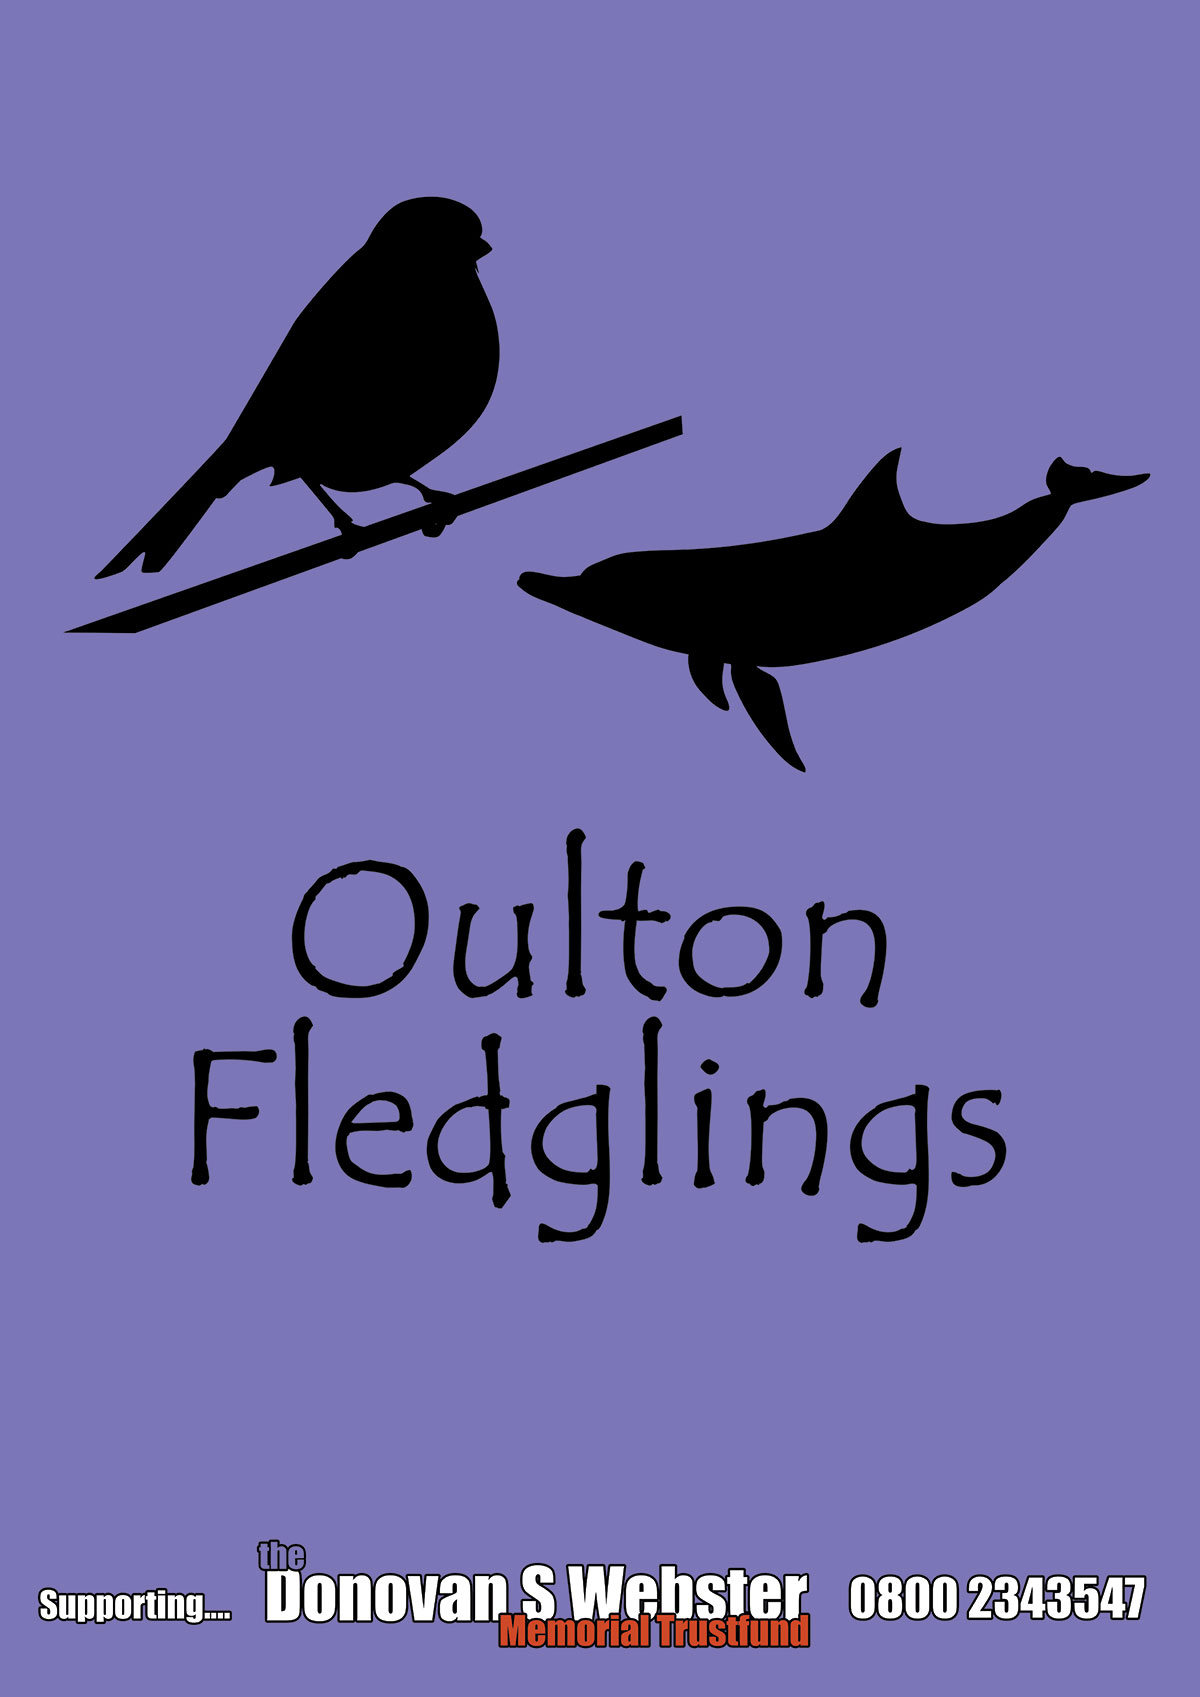 A1-Oulton-Fledglings-Steel-Banner